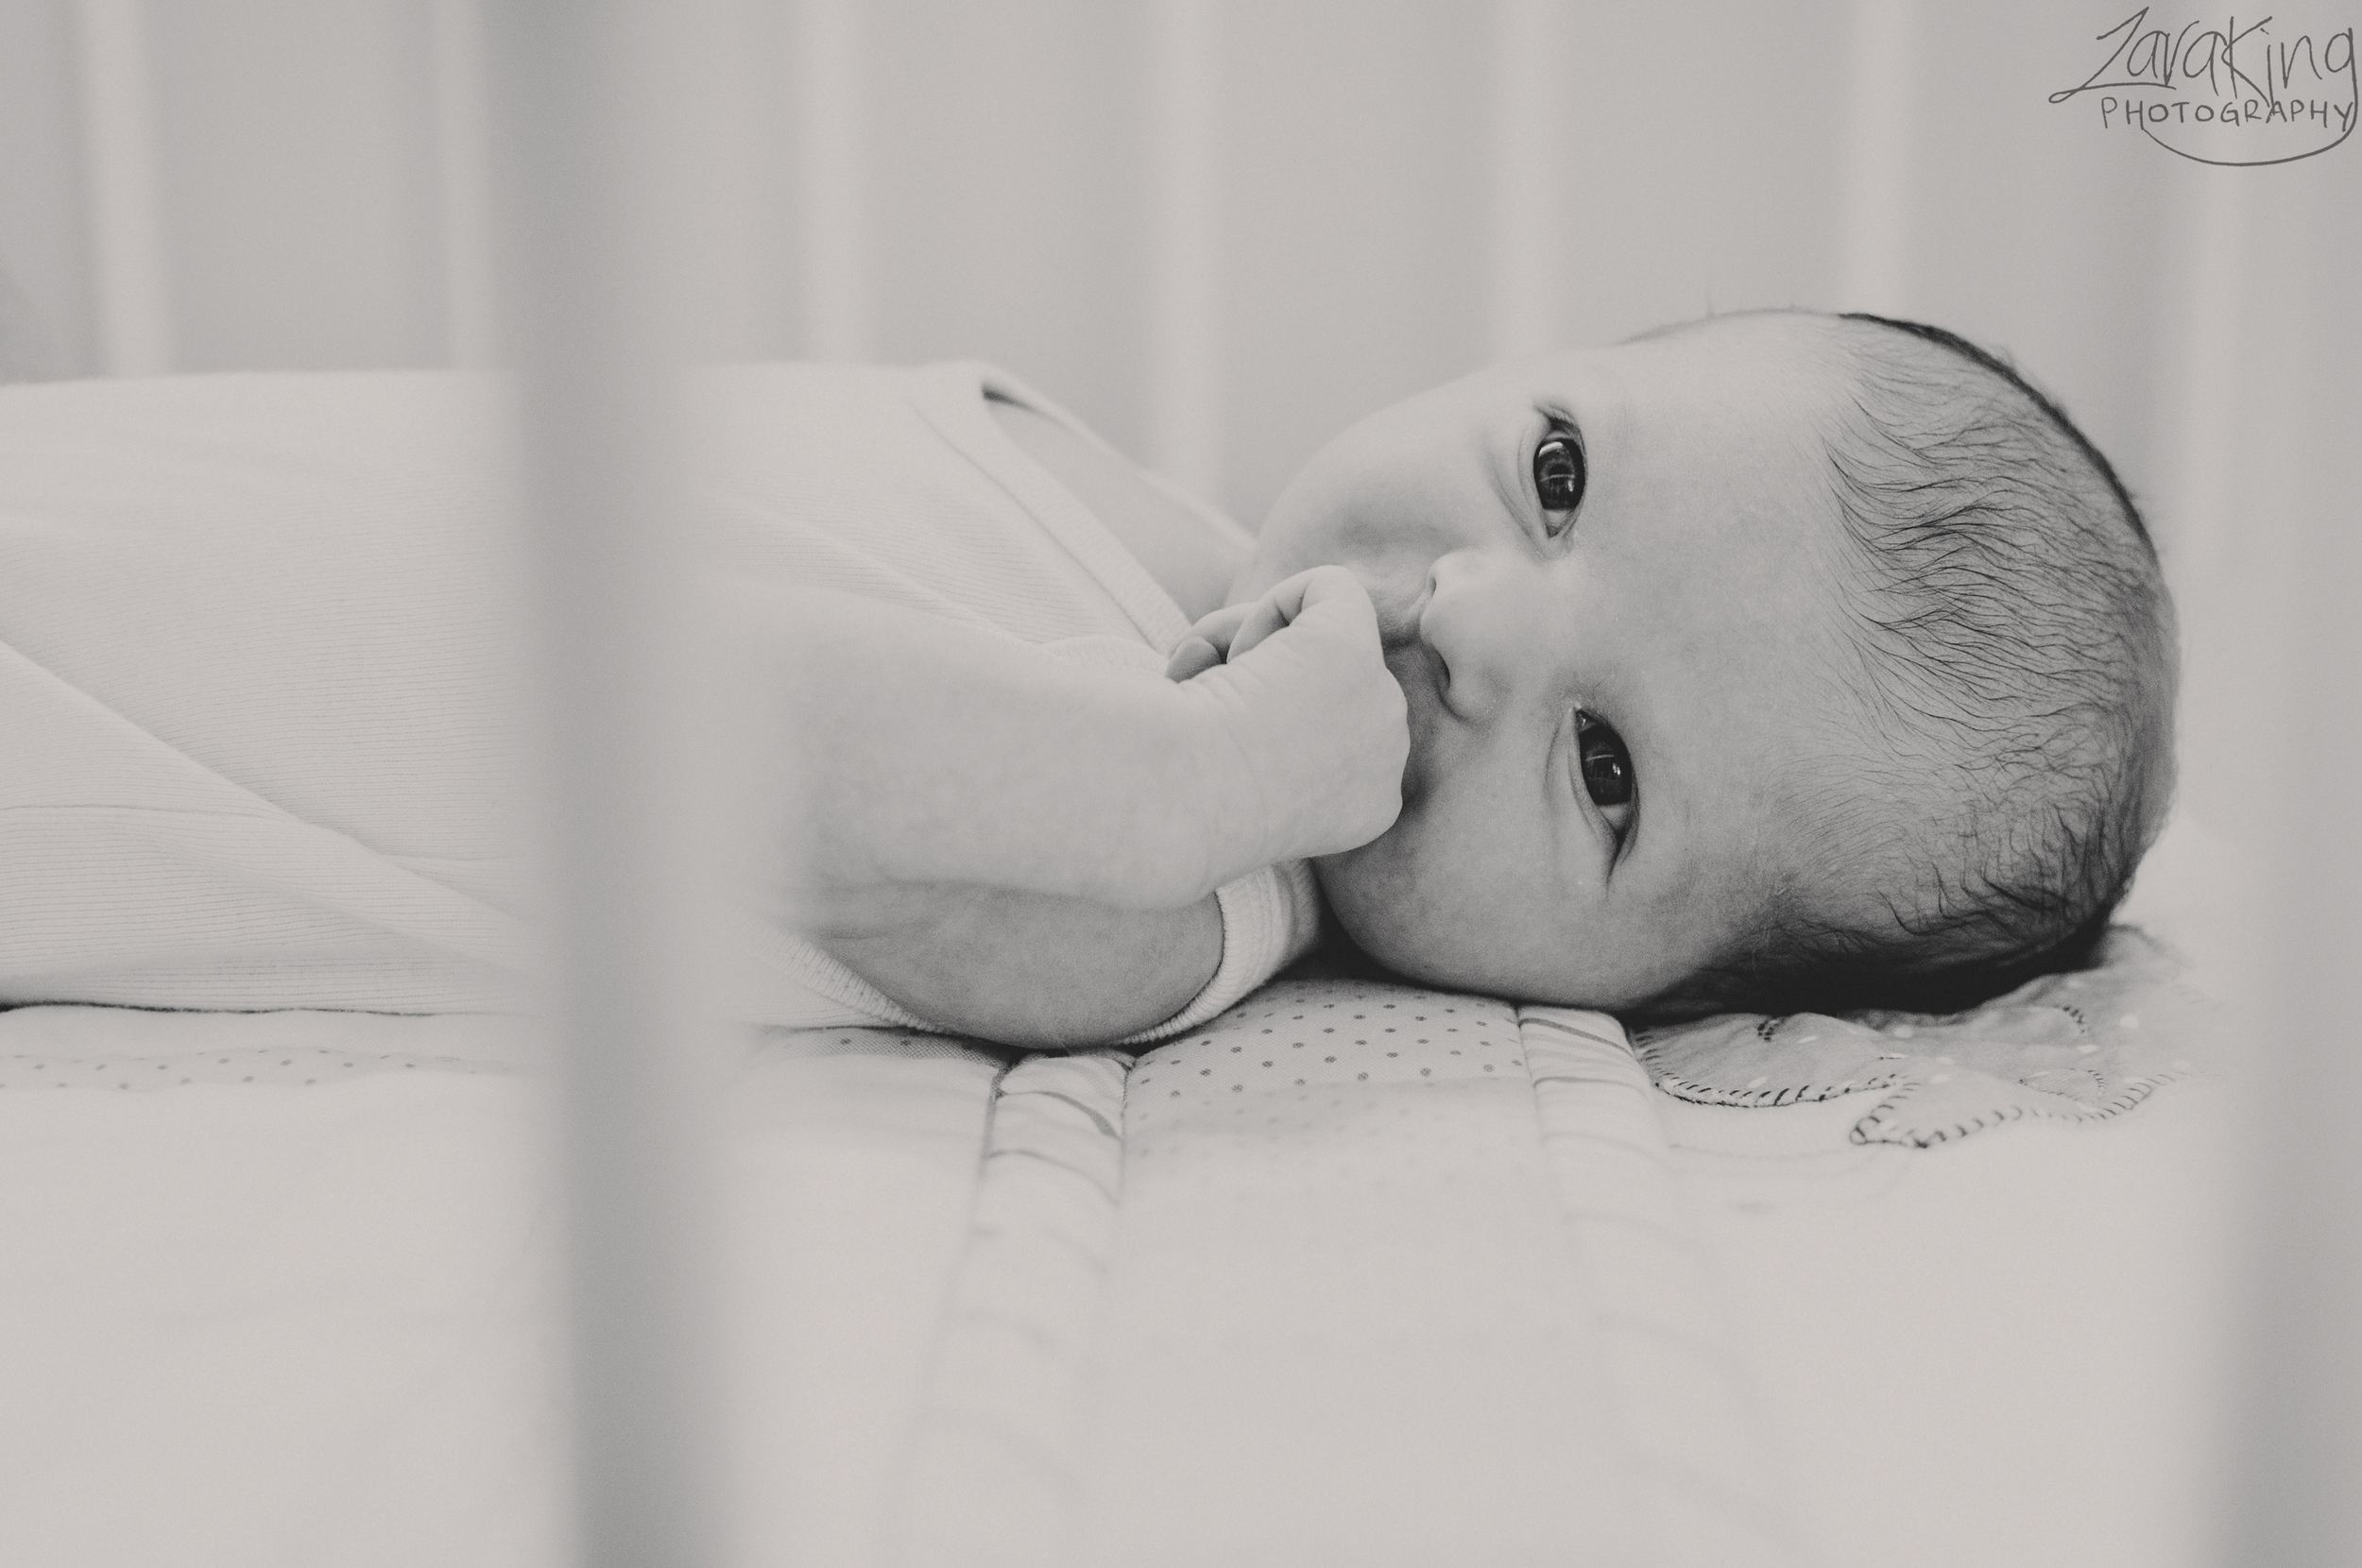 Zara King Photography | Blog | Newborn and family portrait session with Jayden, Rachael and Lily in Wellington, NZ